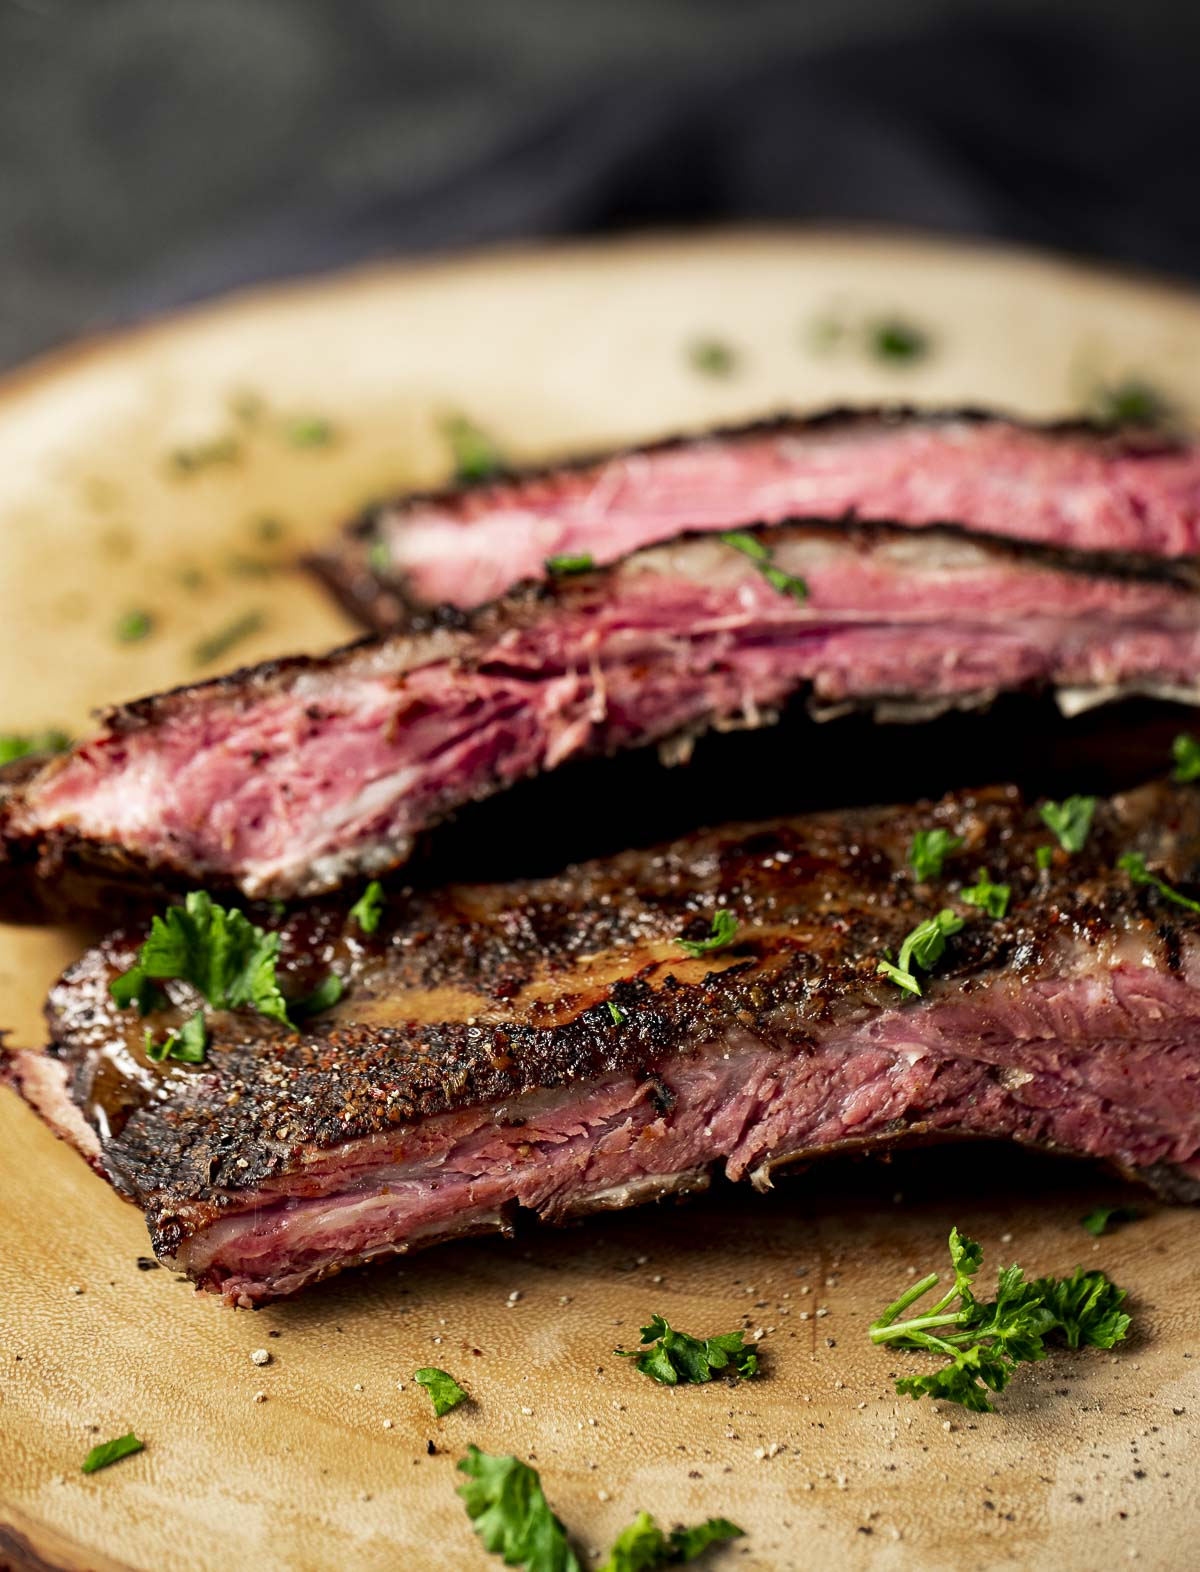 Beef back ribs cooked, sliced and arranged on a wooden board.